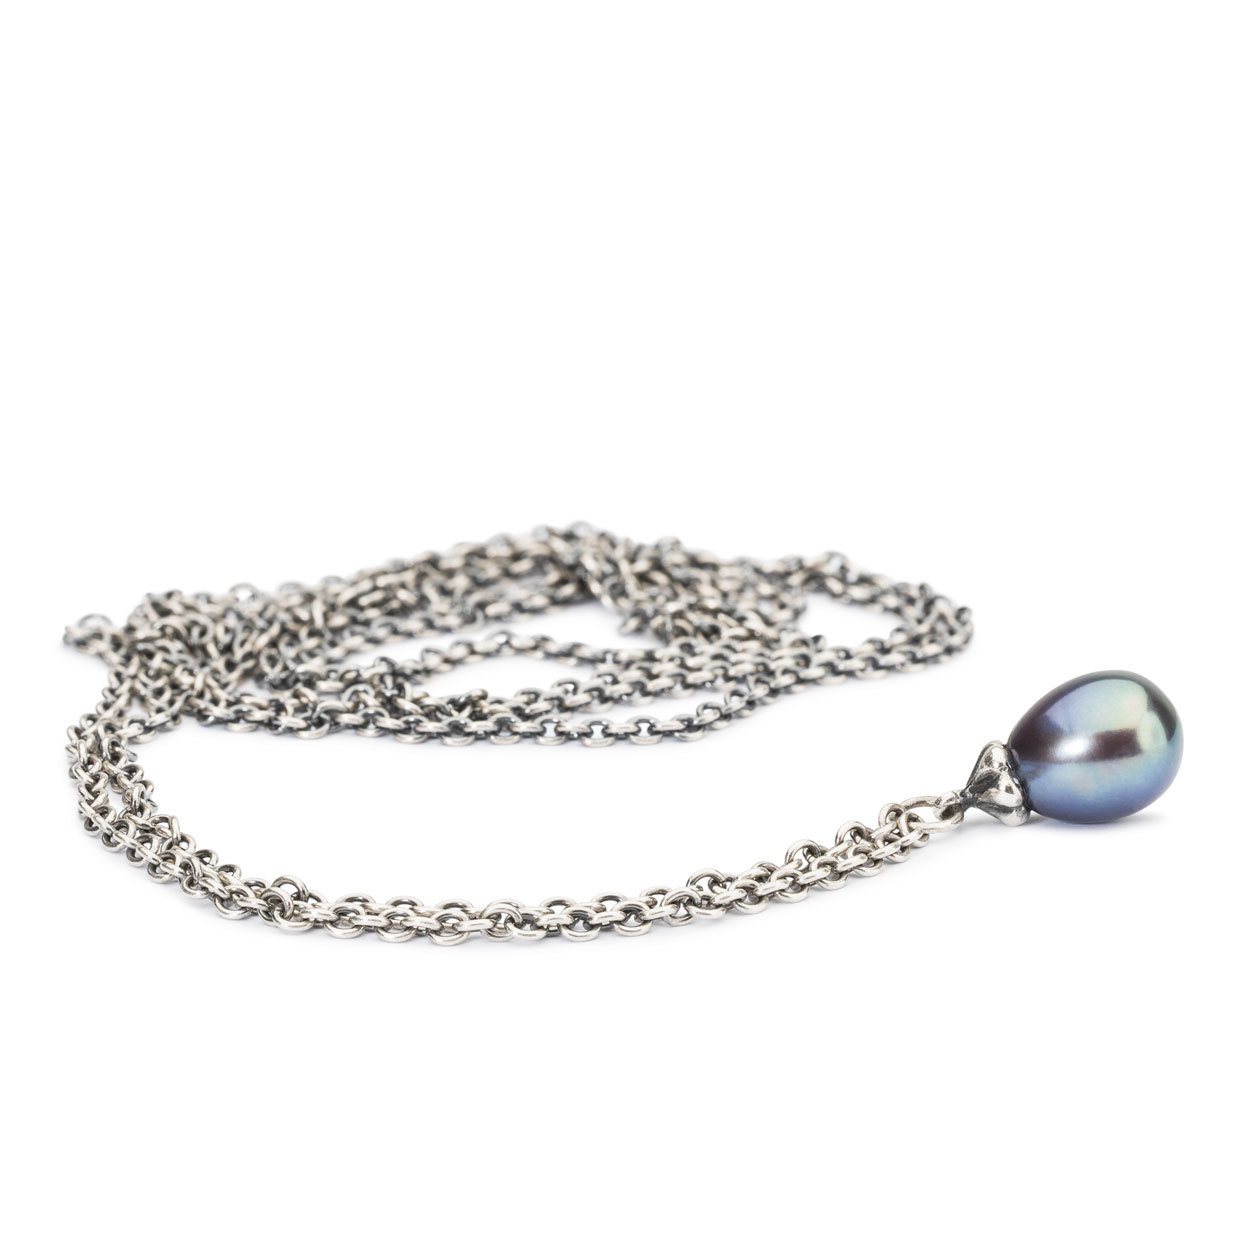 Trollbeads TAGFA-00061 Ketting Peacock Parel zilver 110 cm